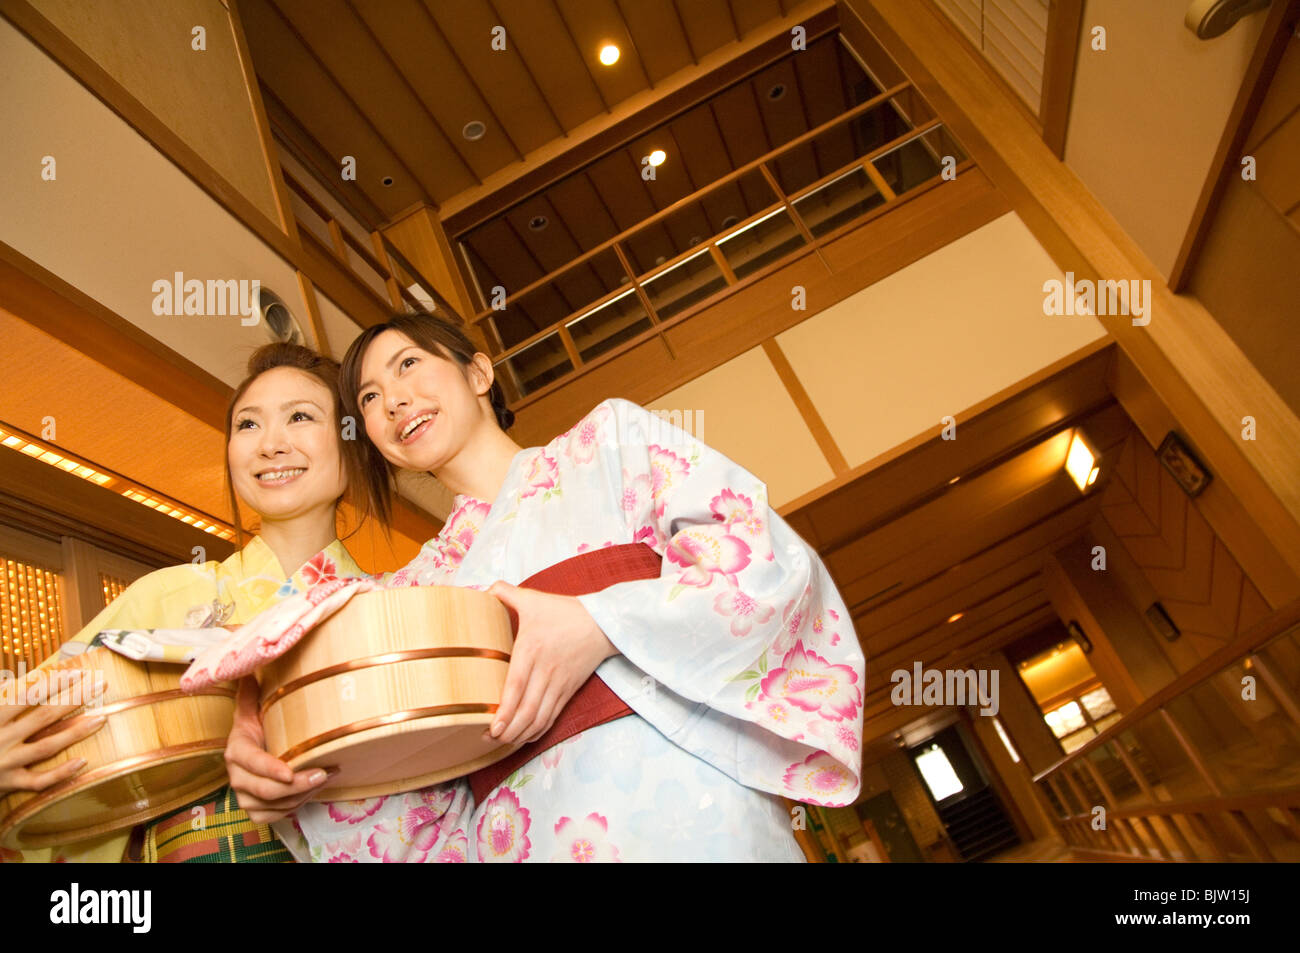 Two women wearing yukata and holding spa products at a health spa Stock Photo